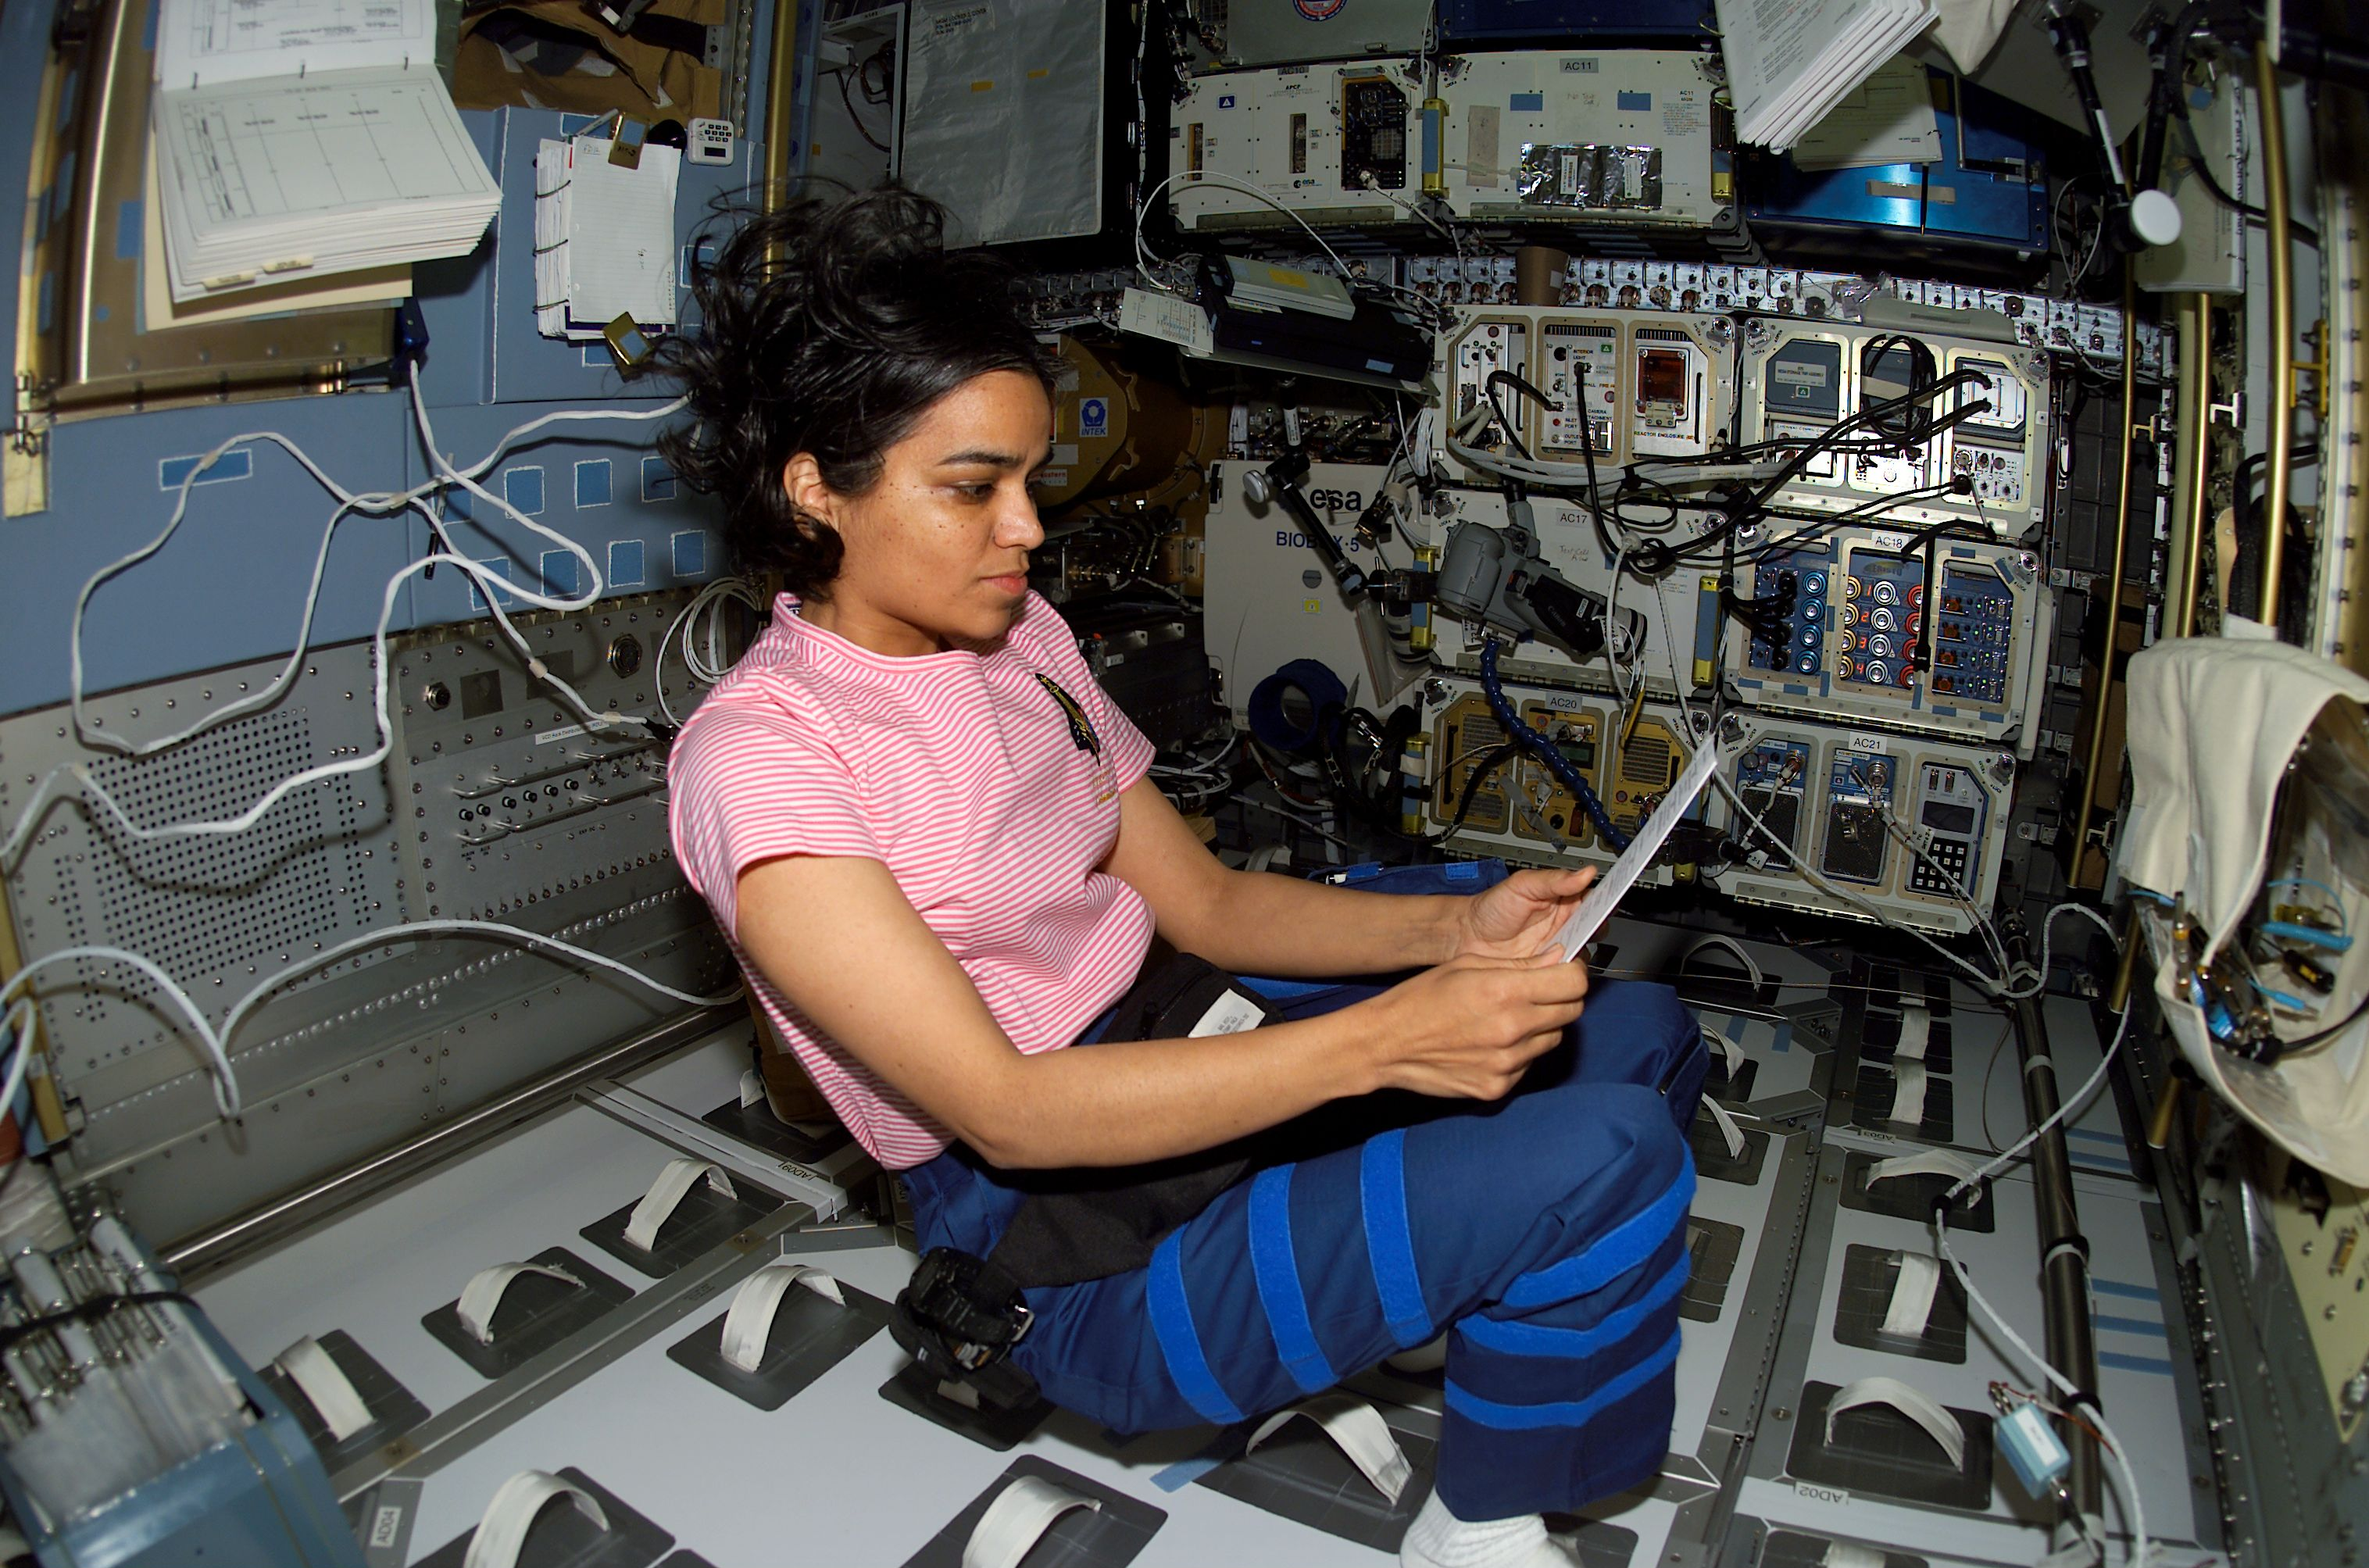 Astronaut Kalpana Chawla looks over a procedures checklist in the SPACEHAB Research Double Module aboard the Space Shuttle Columbia.